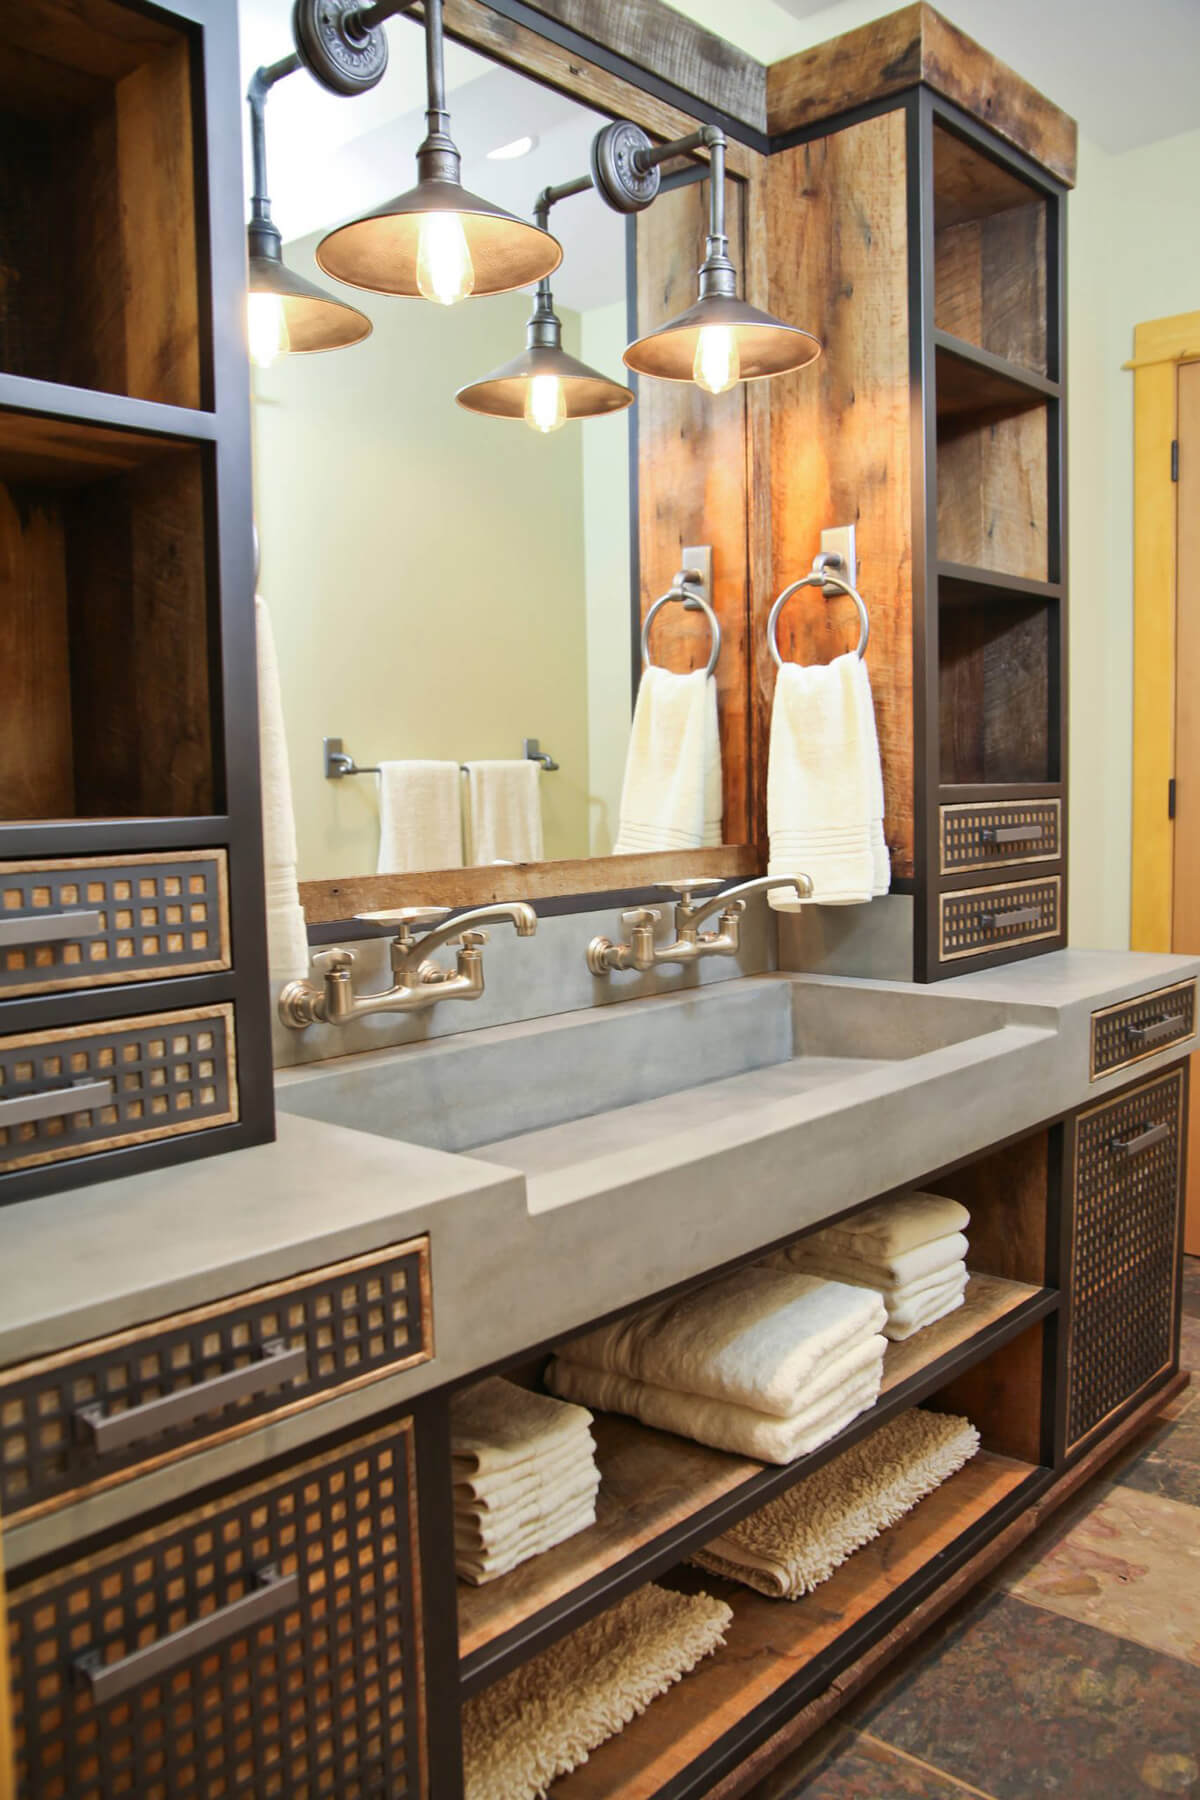 Sink Set into the Countertop